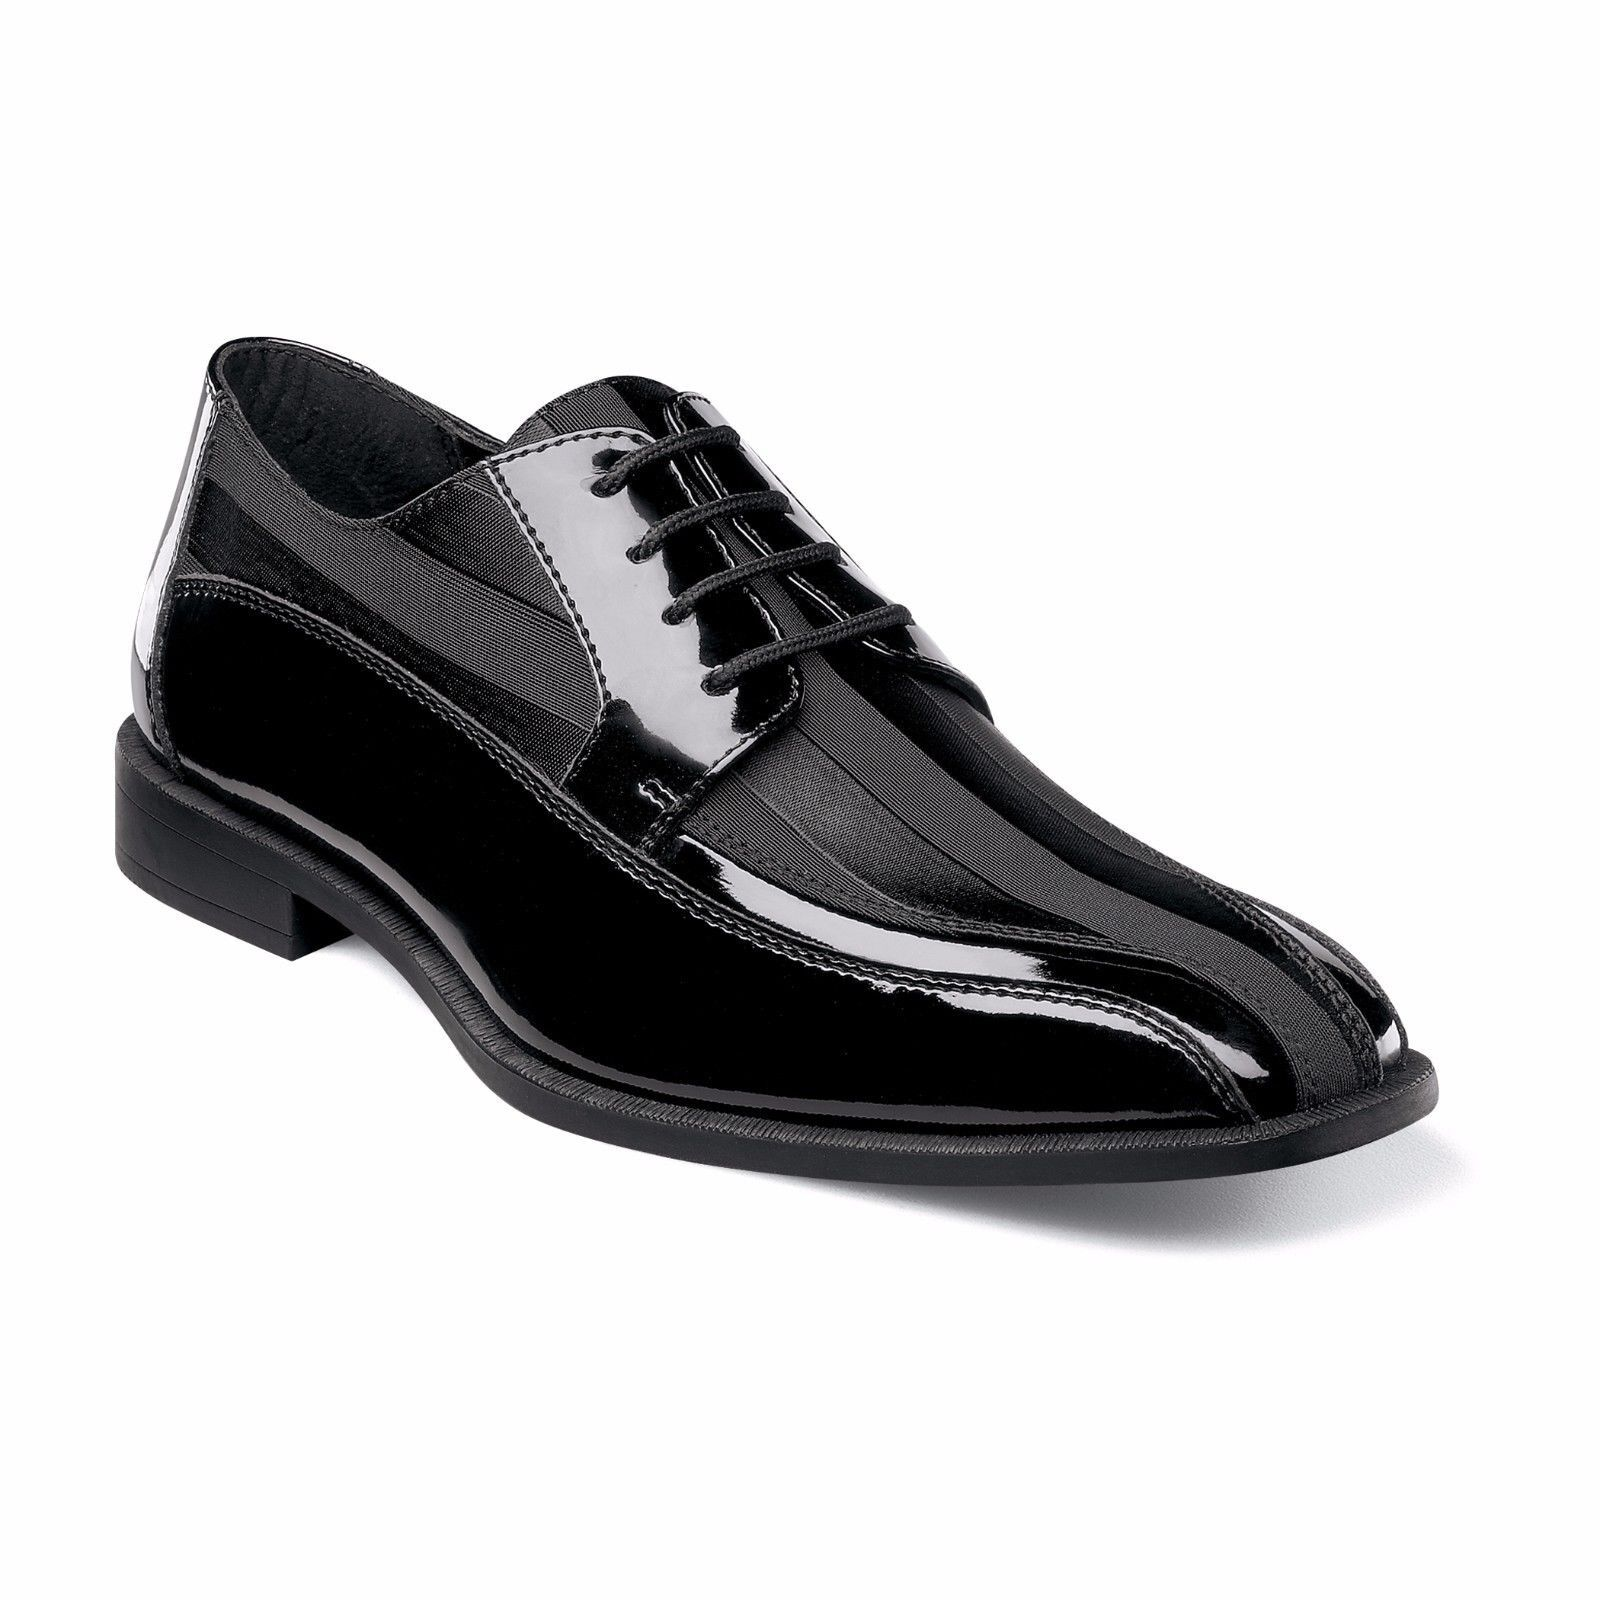 incredibili sconti Stacy Stacy Stacy Adams Uomo nero Royalty Faux Leather Glossy Formal Dress Trending Shoe  consegna gratuita